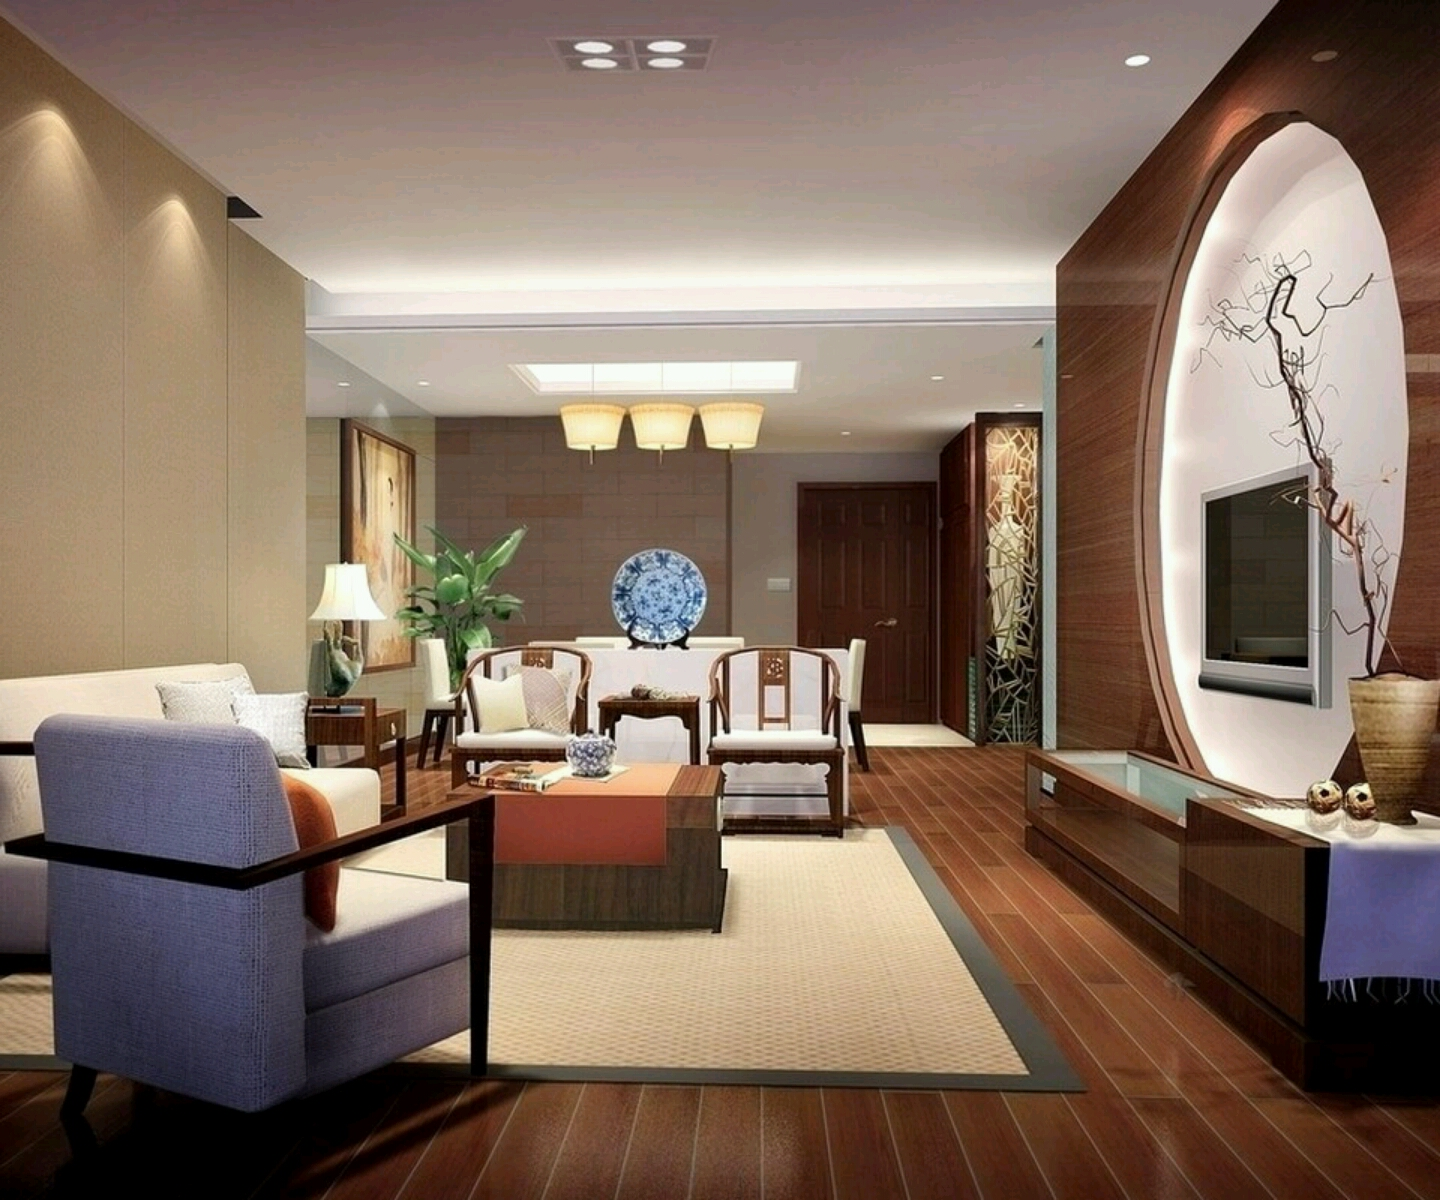 Home Design Ideas Photo Gallery: Luxury Homes Interior Decoration Living Room Designs Ideas